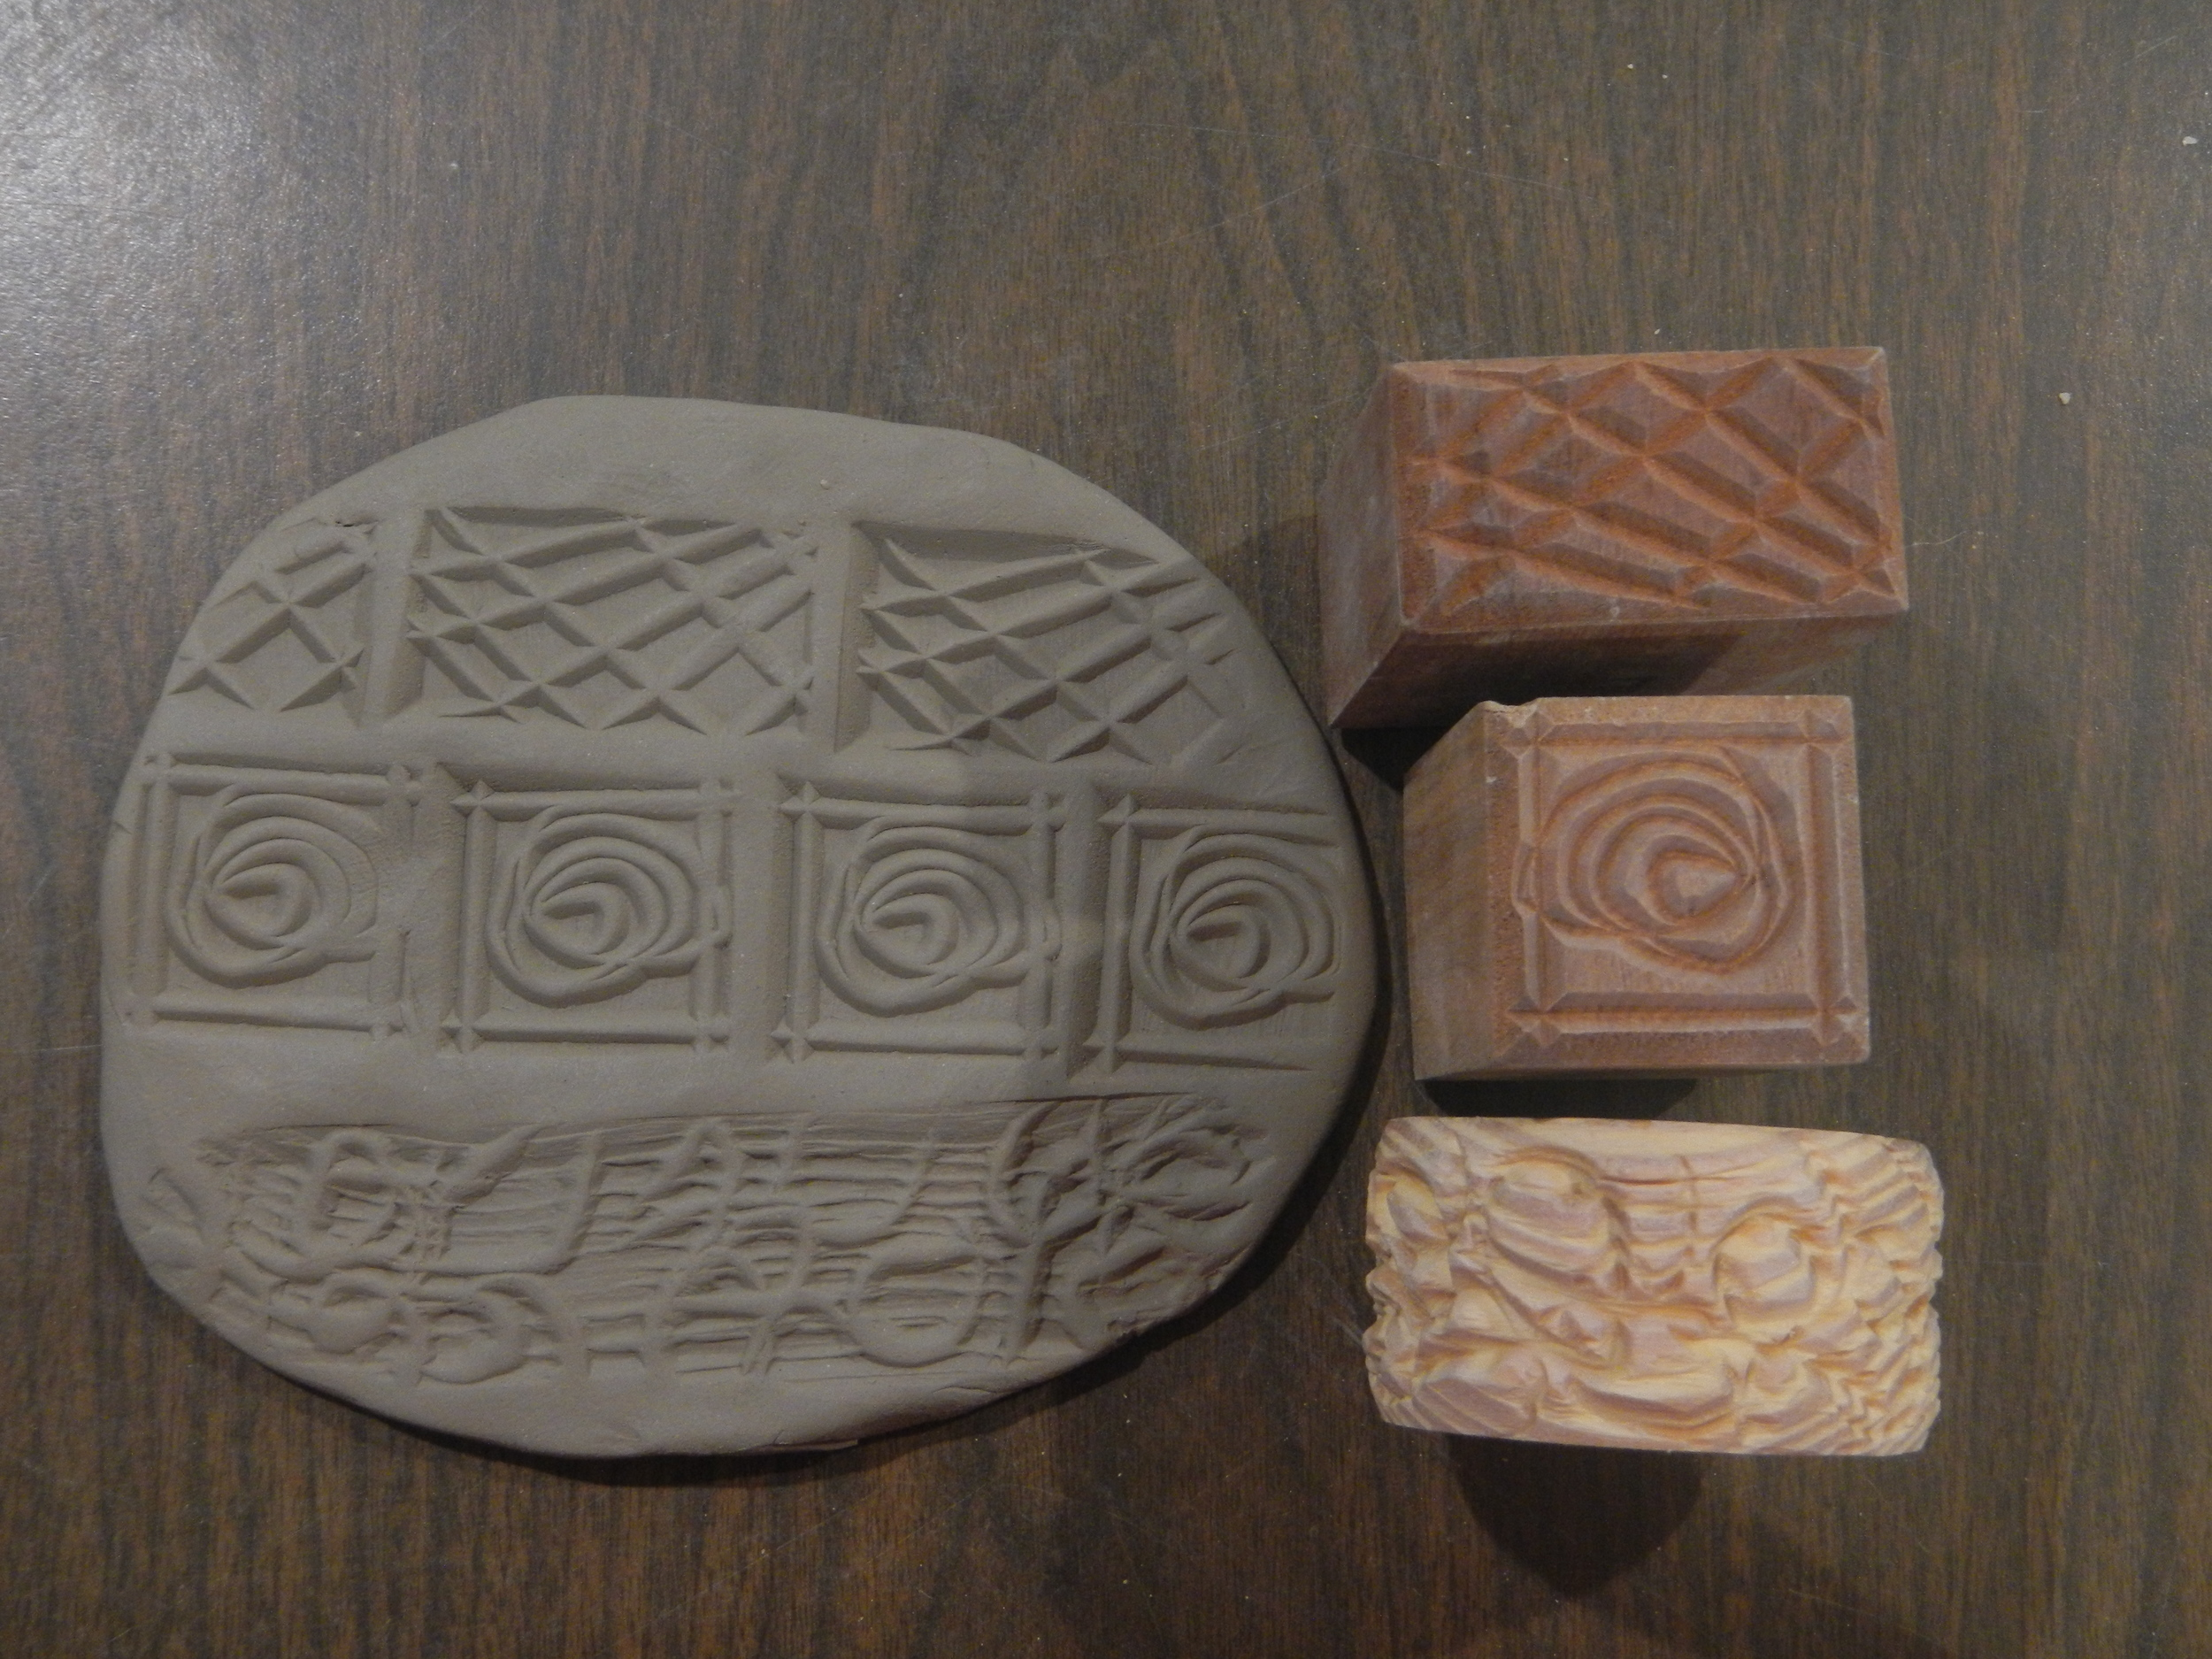 (Mecca Pottery tools.The square and rectangle stampshavedifferent designs cut into the other ends.)